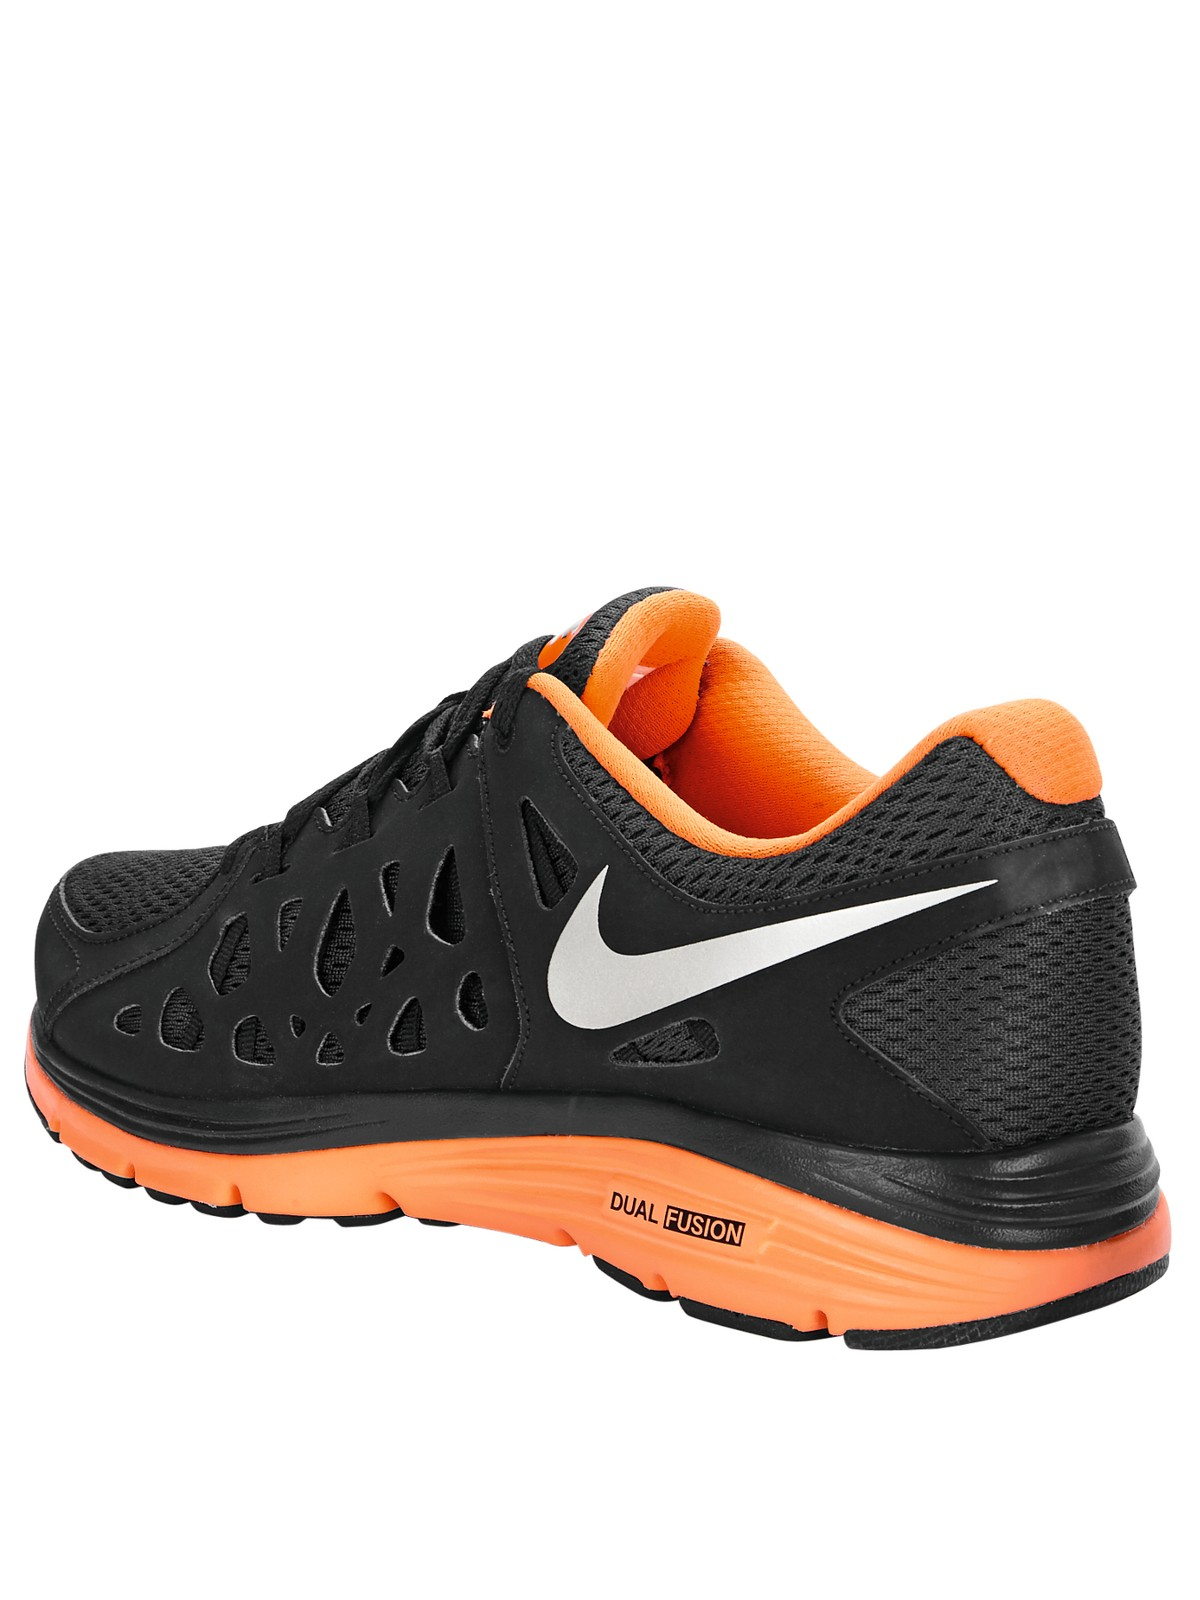 Image Result For Dress Running Shoes